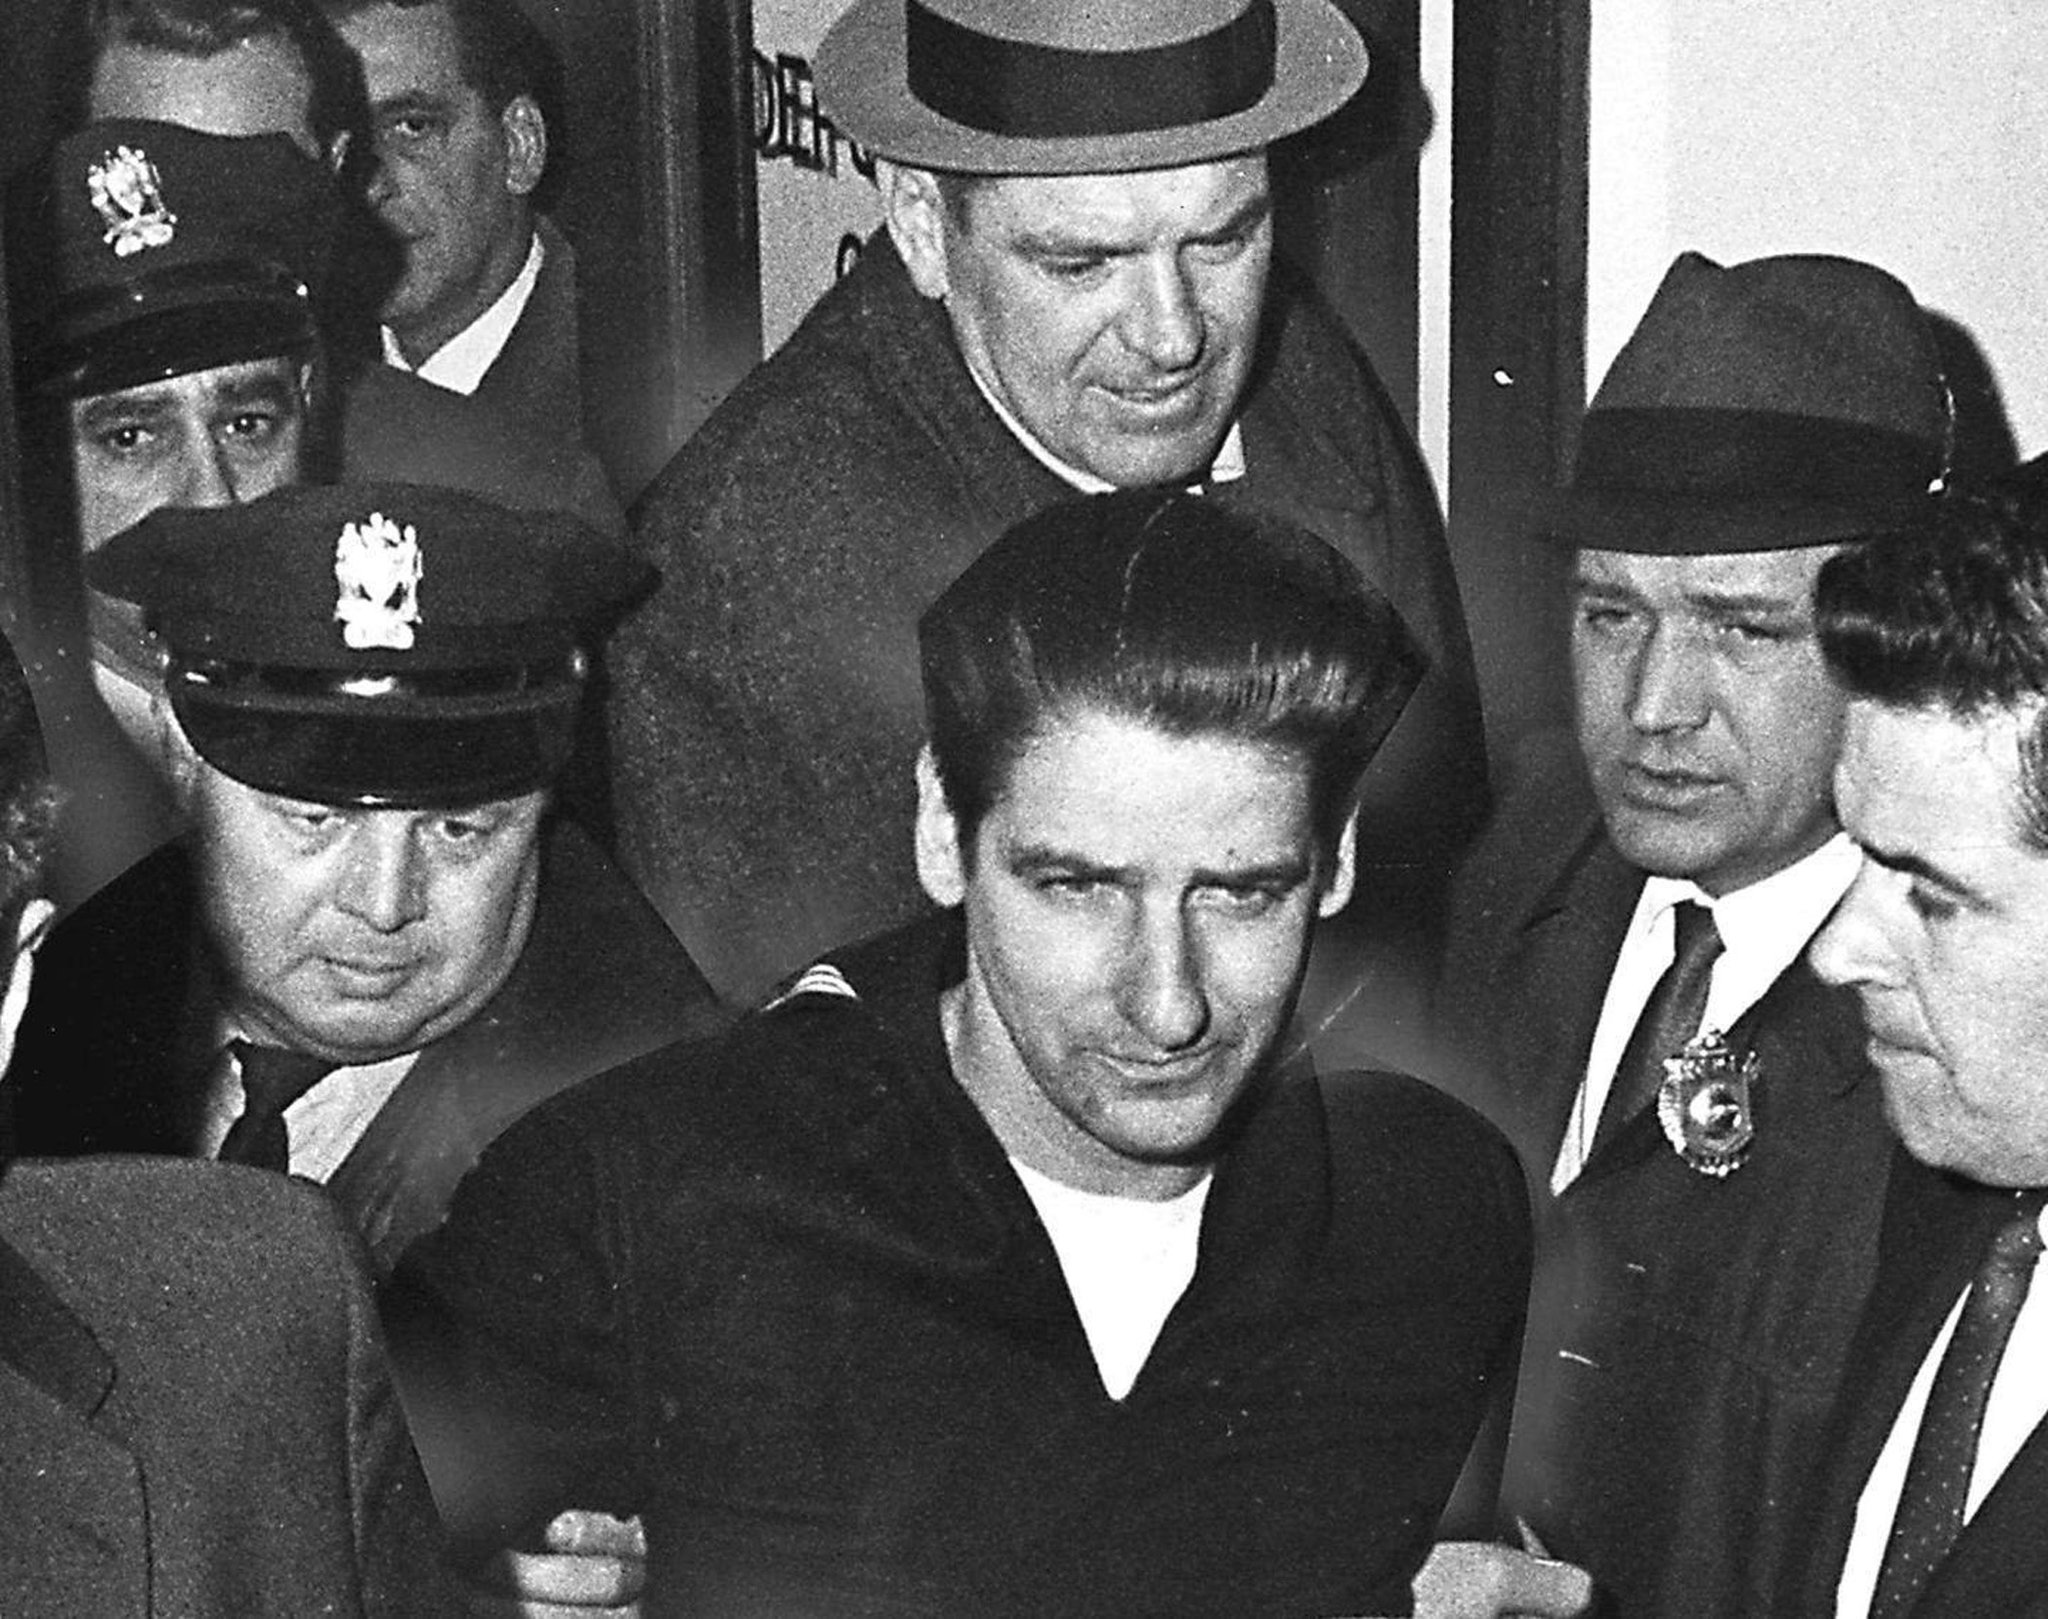 Albert De-Salvo surrounded by police and other authorities